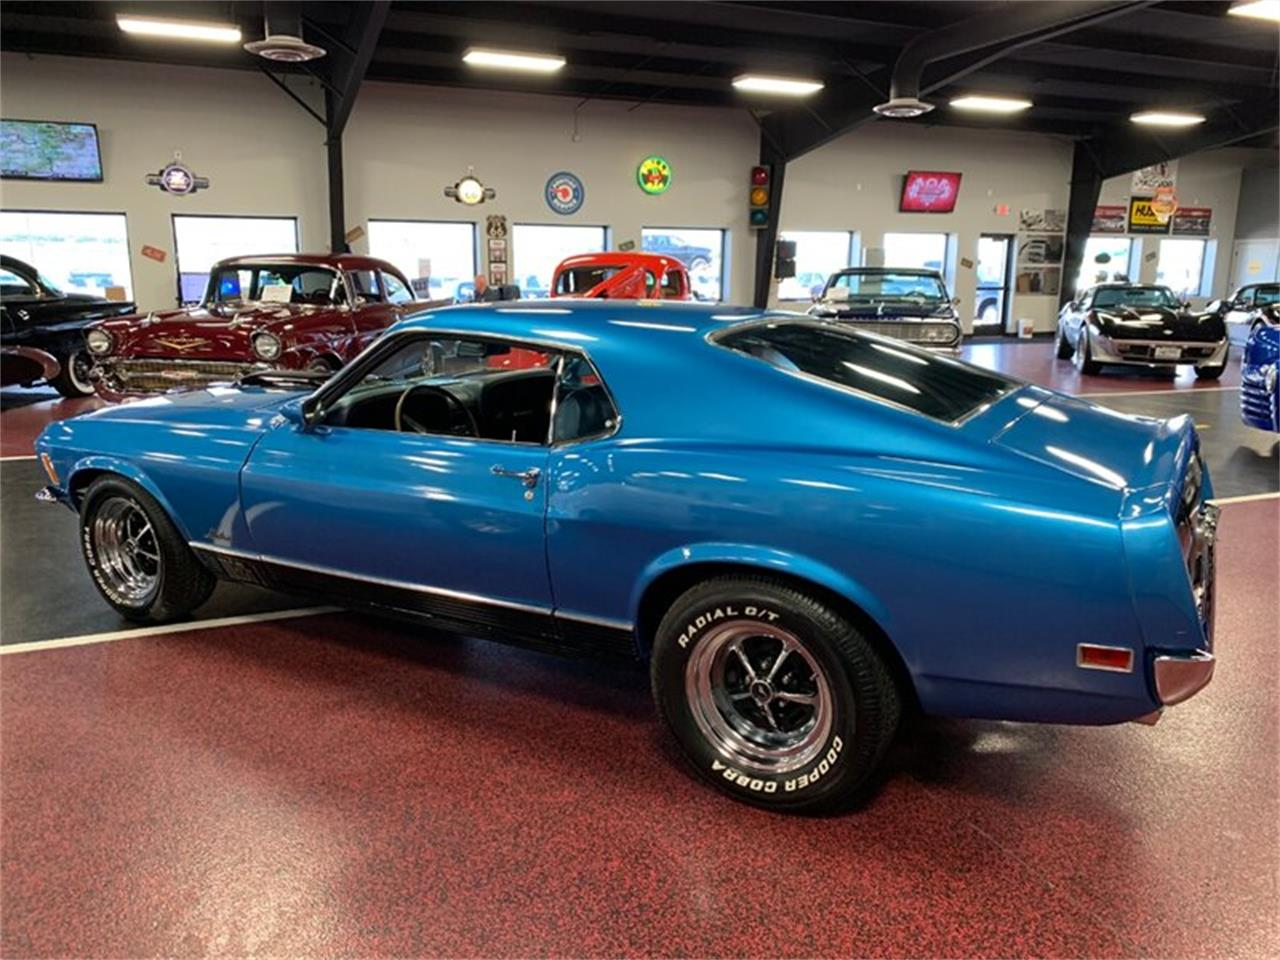 Large Picture of '70 Ford Mustang Mach 1 located in Bismarck North Dakota - $37,900.00 Offered by Rides Auto Sales - QGAG